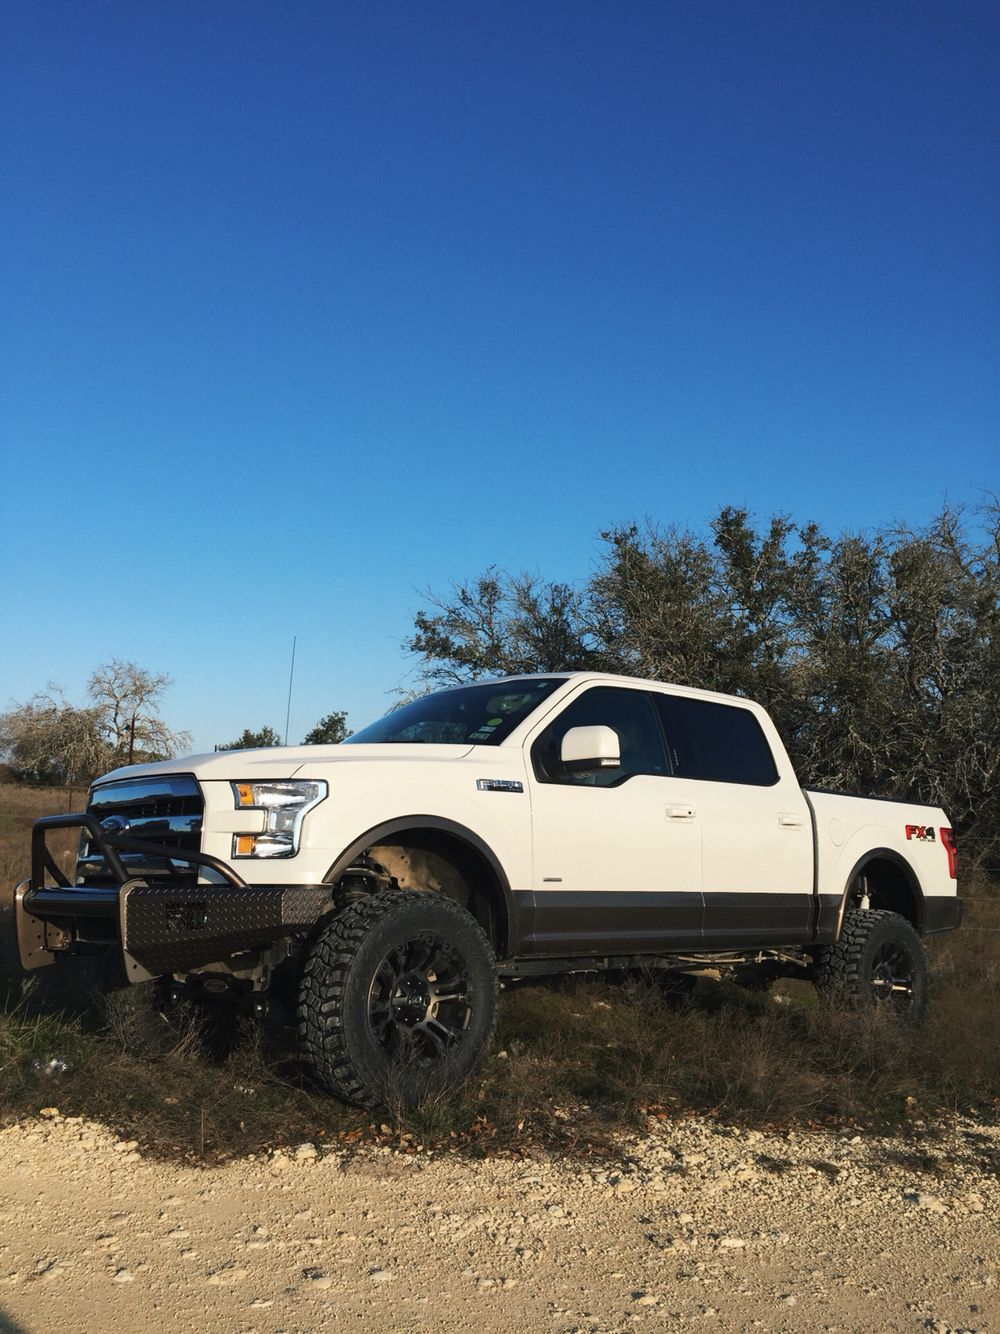 Lifted 2015 F150 White And Caribou Ford Texas Trucks Lifted Fuel Fabfours White Caribou Fx4 2015f150 Coop Ford Trucks Built Ford Tough Trucks Only